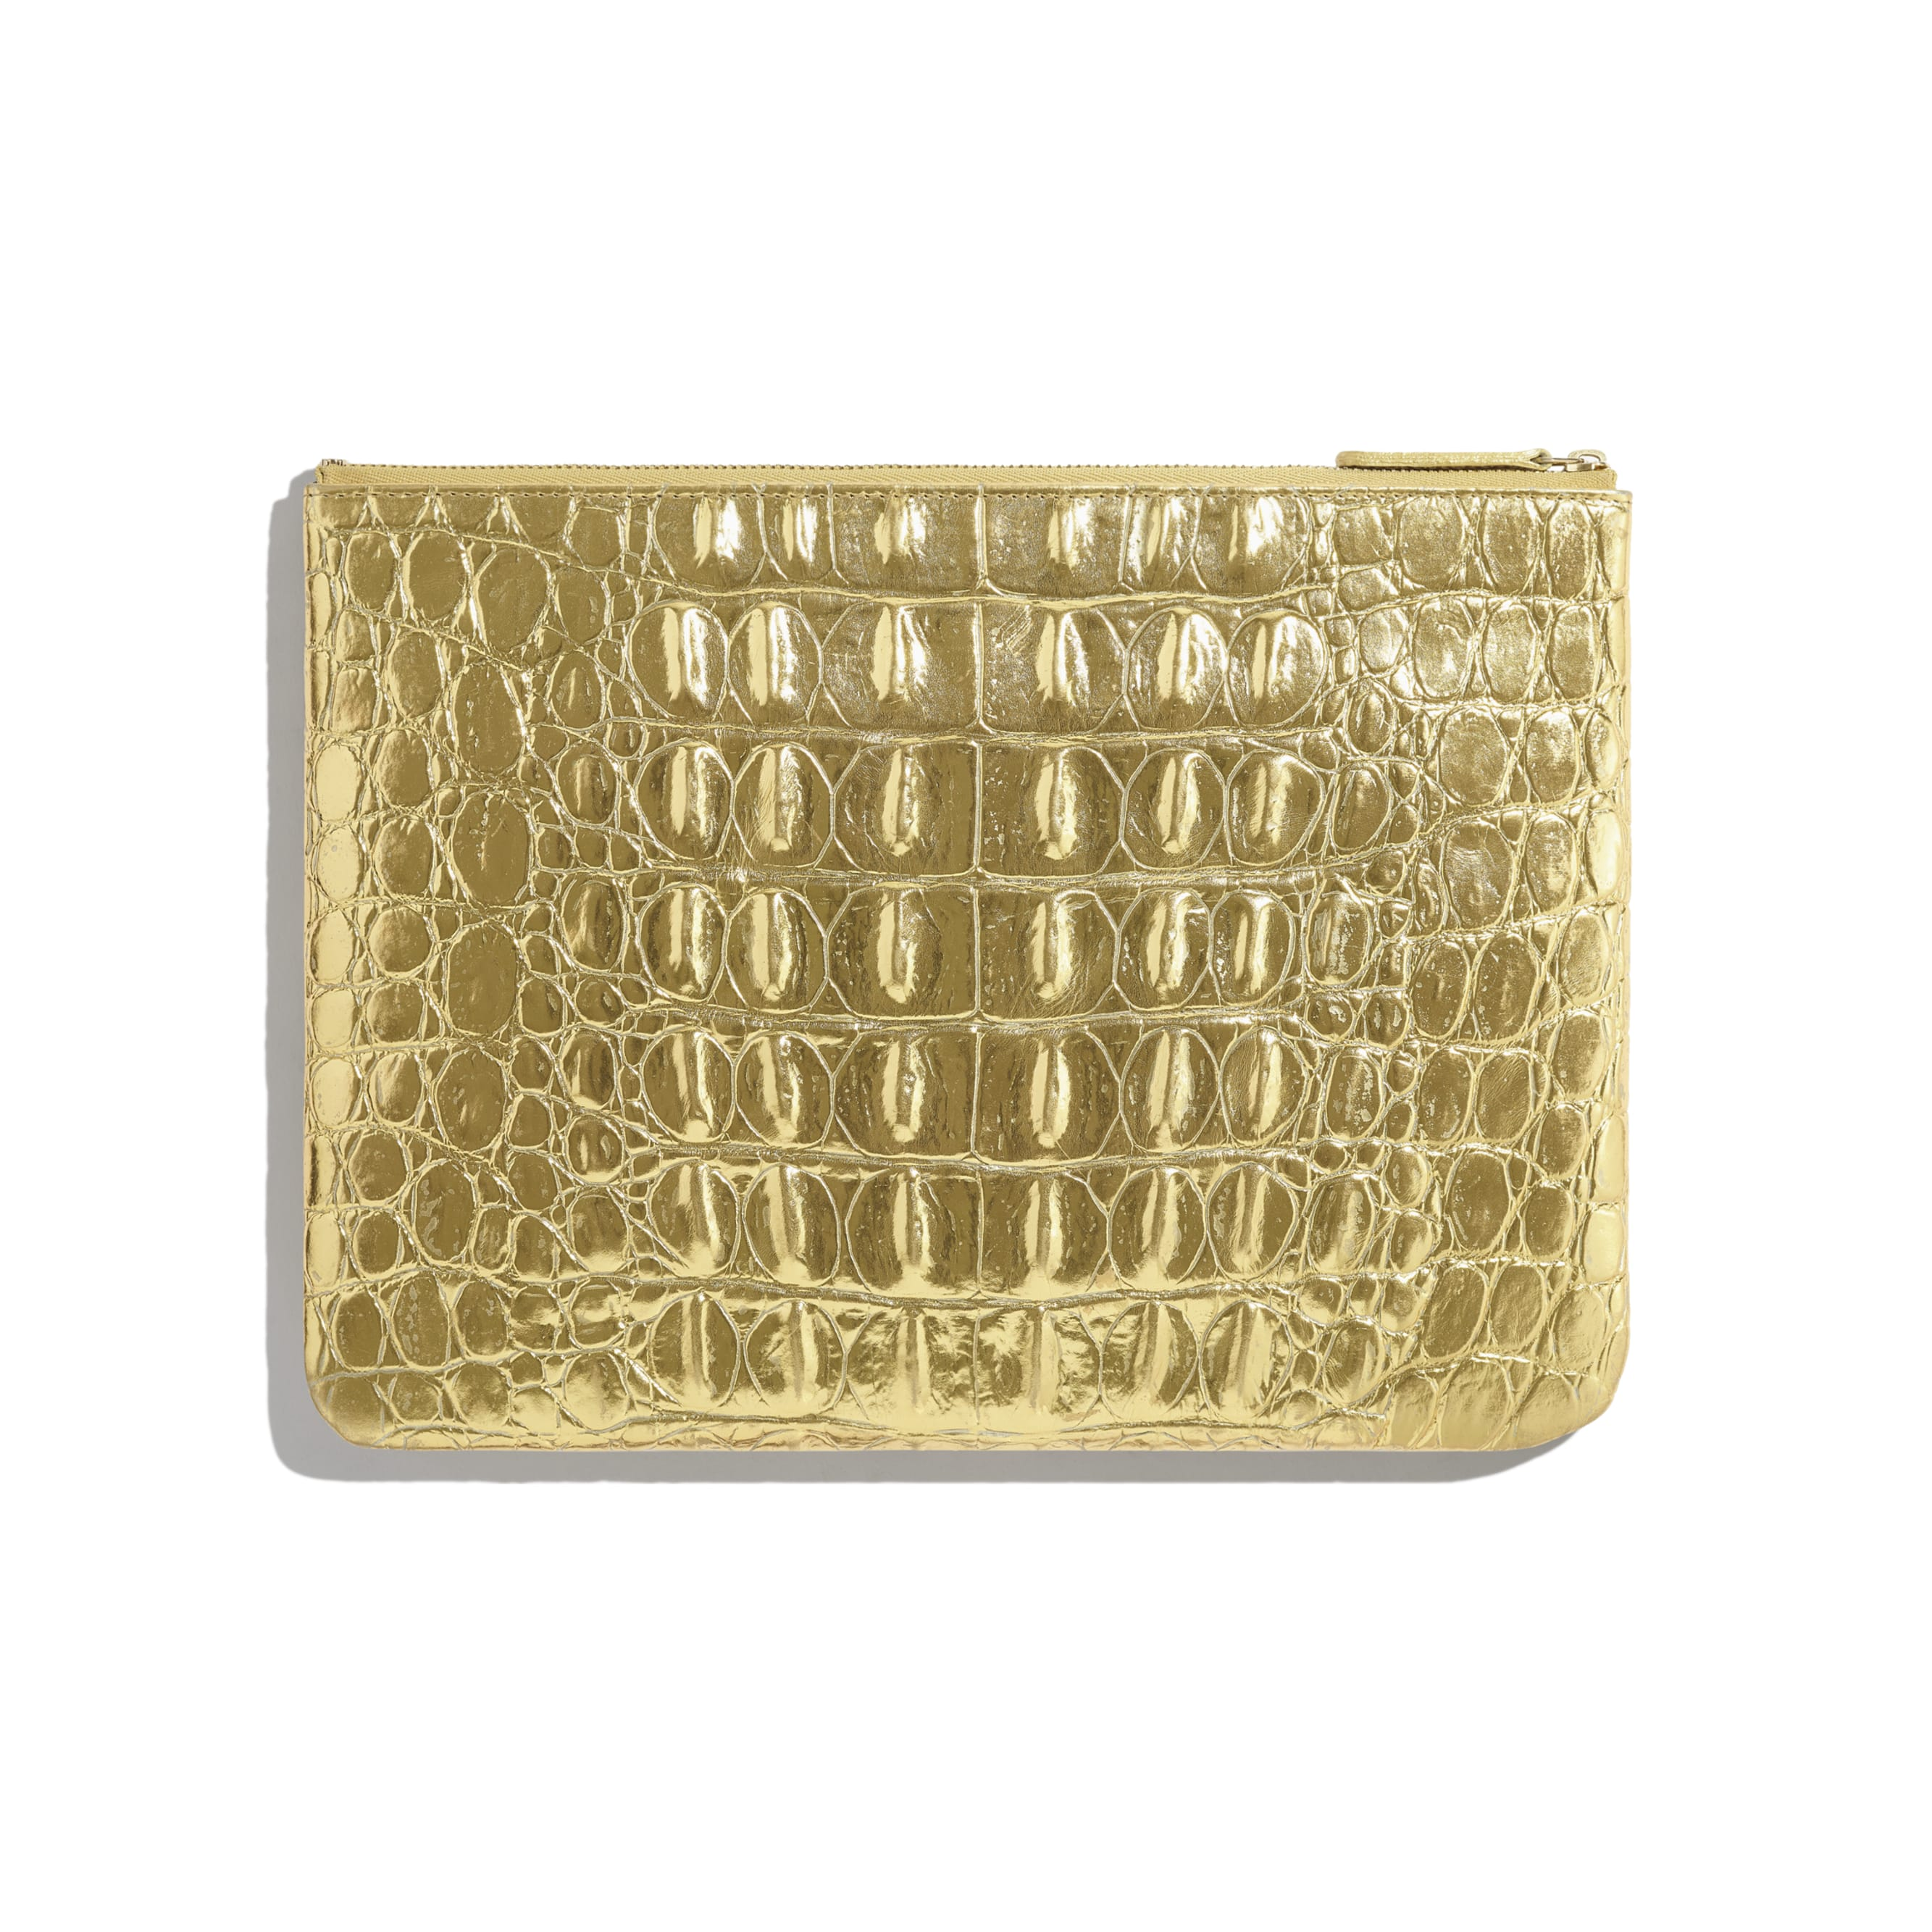 Classic Pouch - Gold - Metallic Crocodile Embossed Calfskin & Gold Metal - Alternative view - see standard sized version